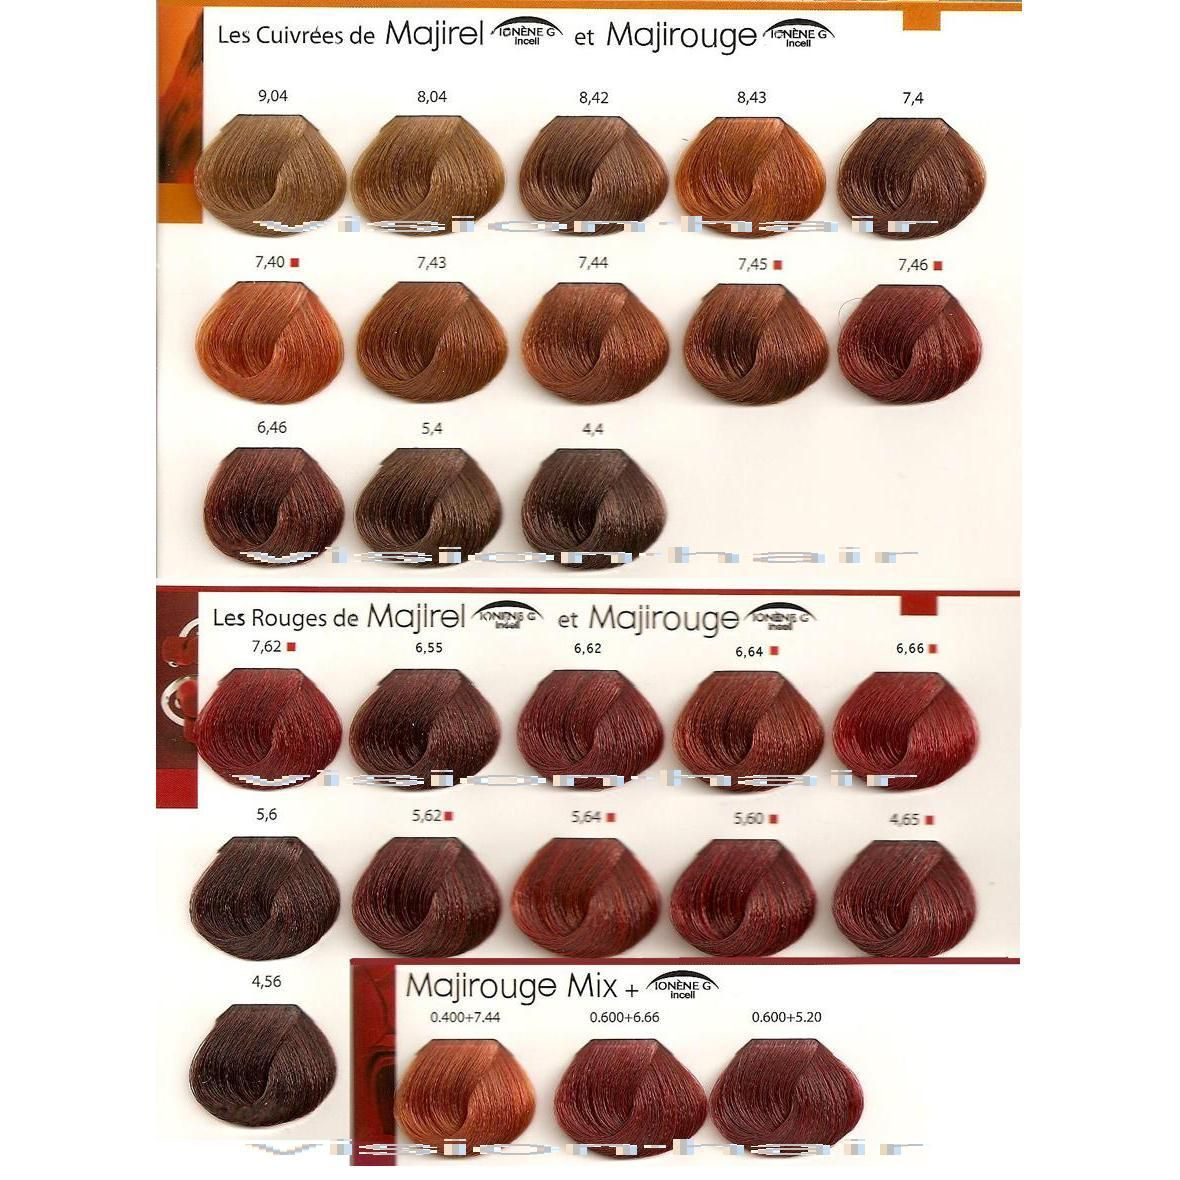 Nuancier Couleur Chocolat pour how to dye hair red / ginger | teinture, coloration et coiffures